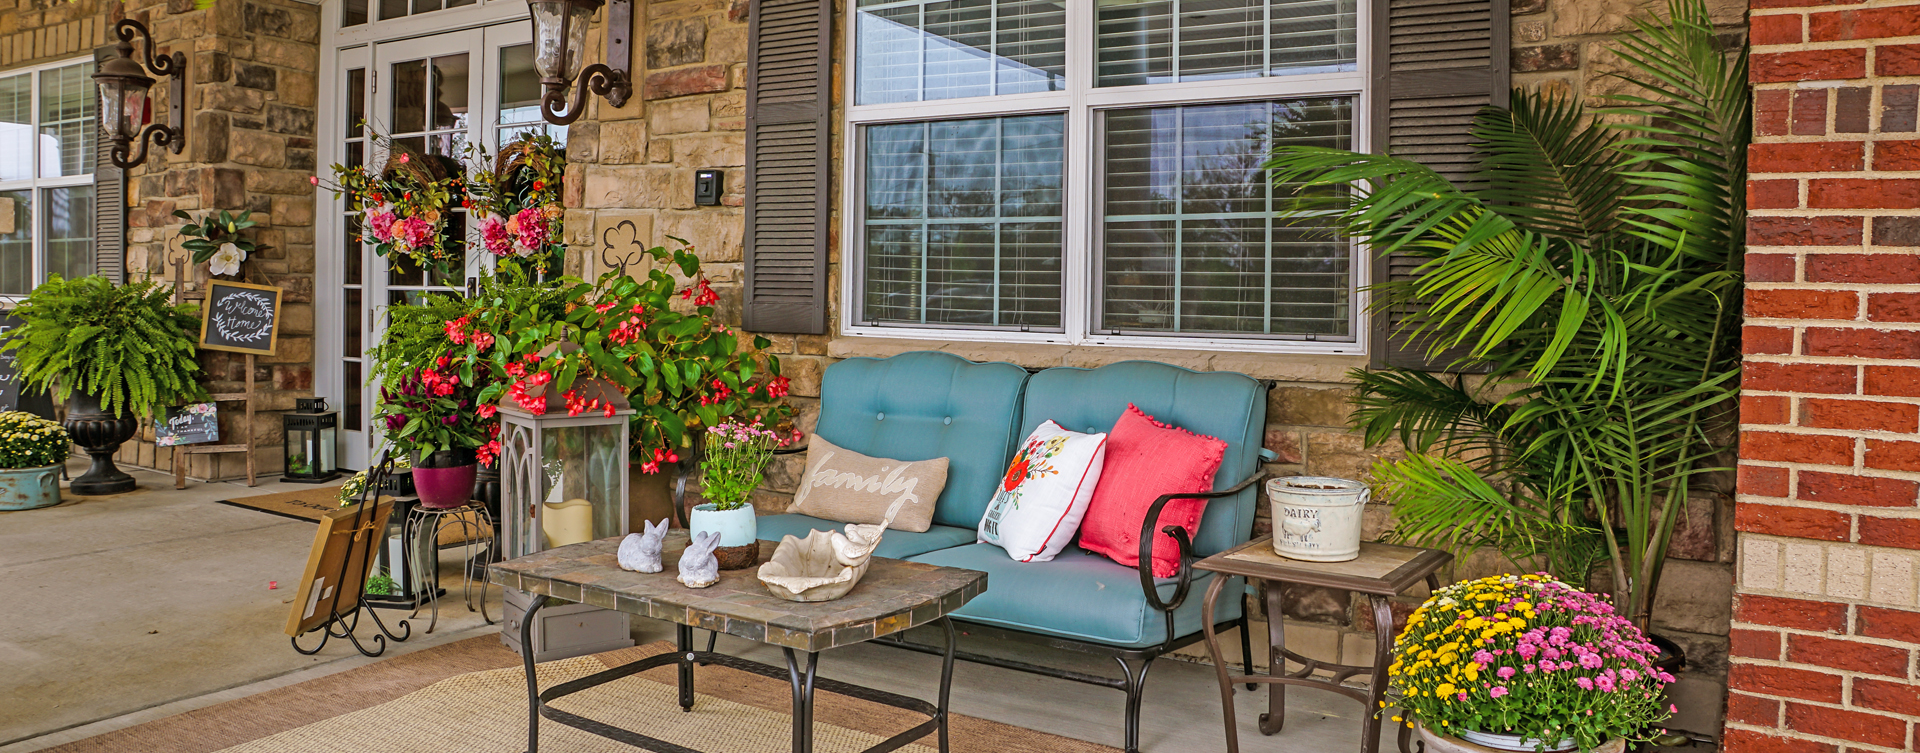 Sip on your favorite drink on the porch at Bickford of Aurora